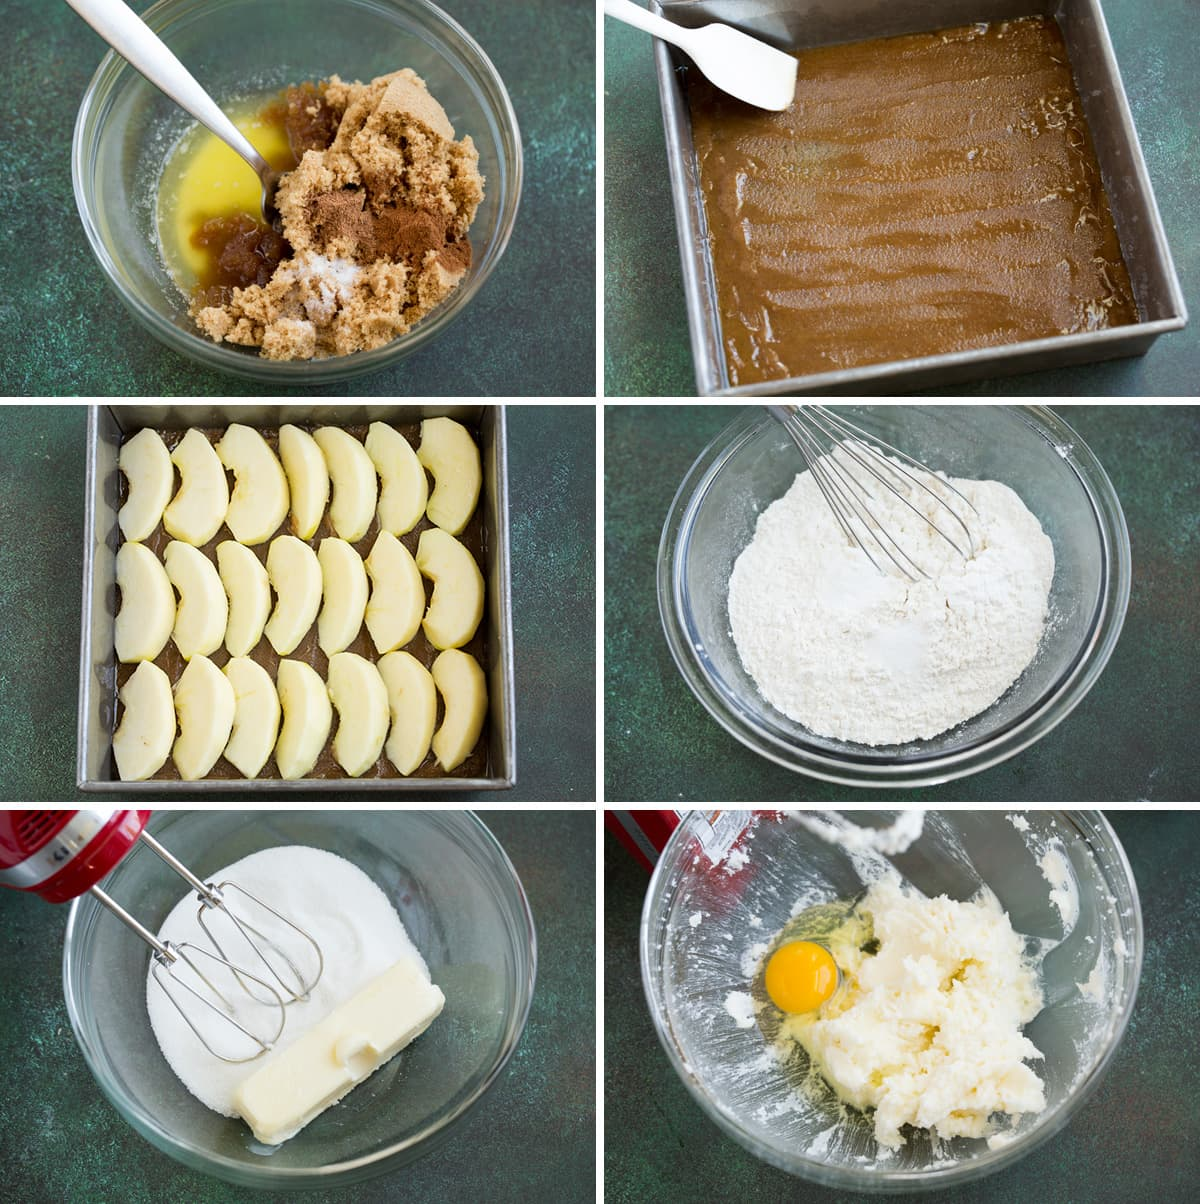 Steps showing how to make apple upside down cake toppings